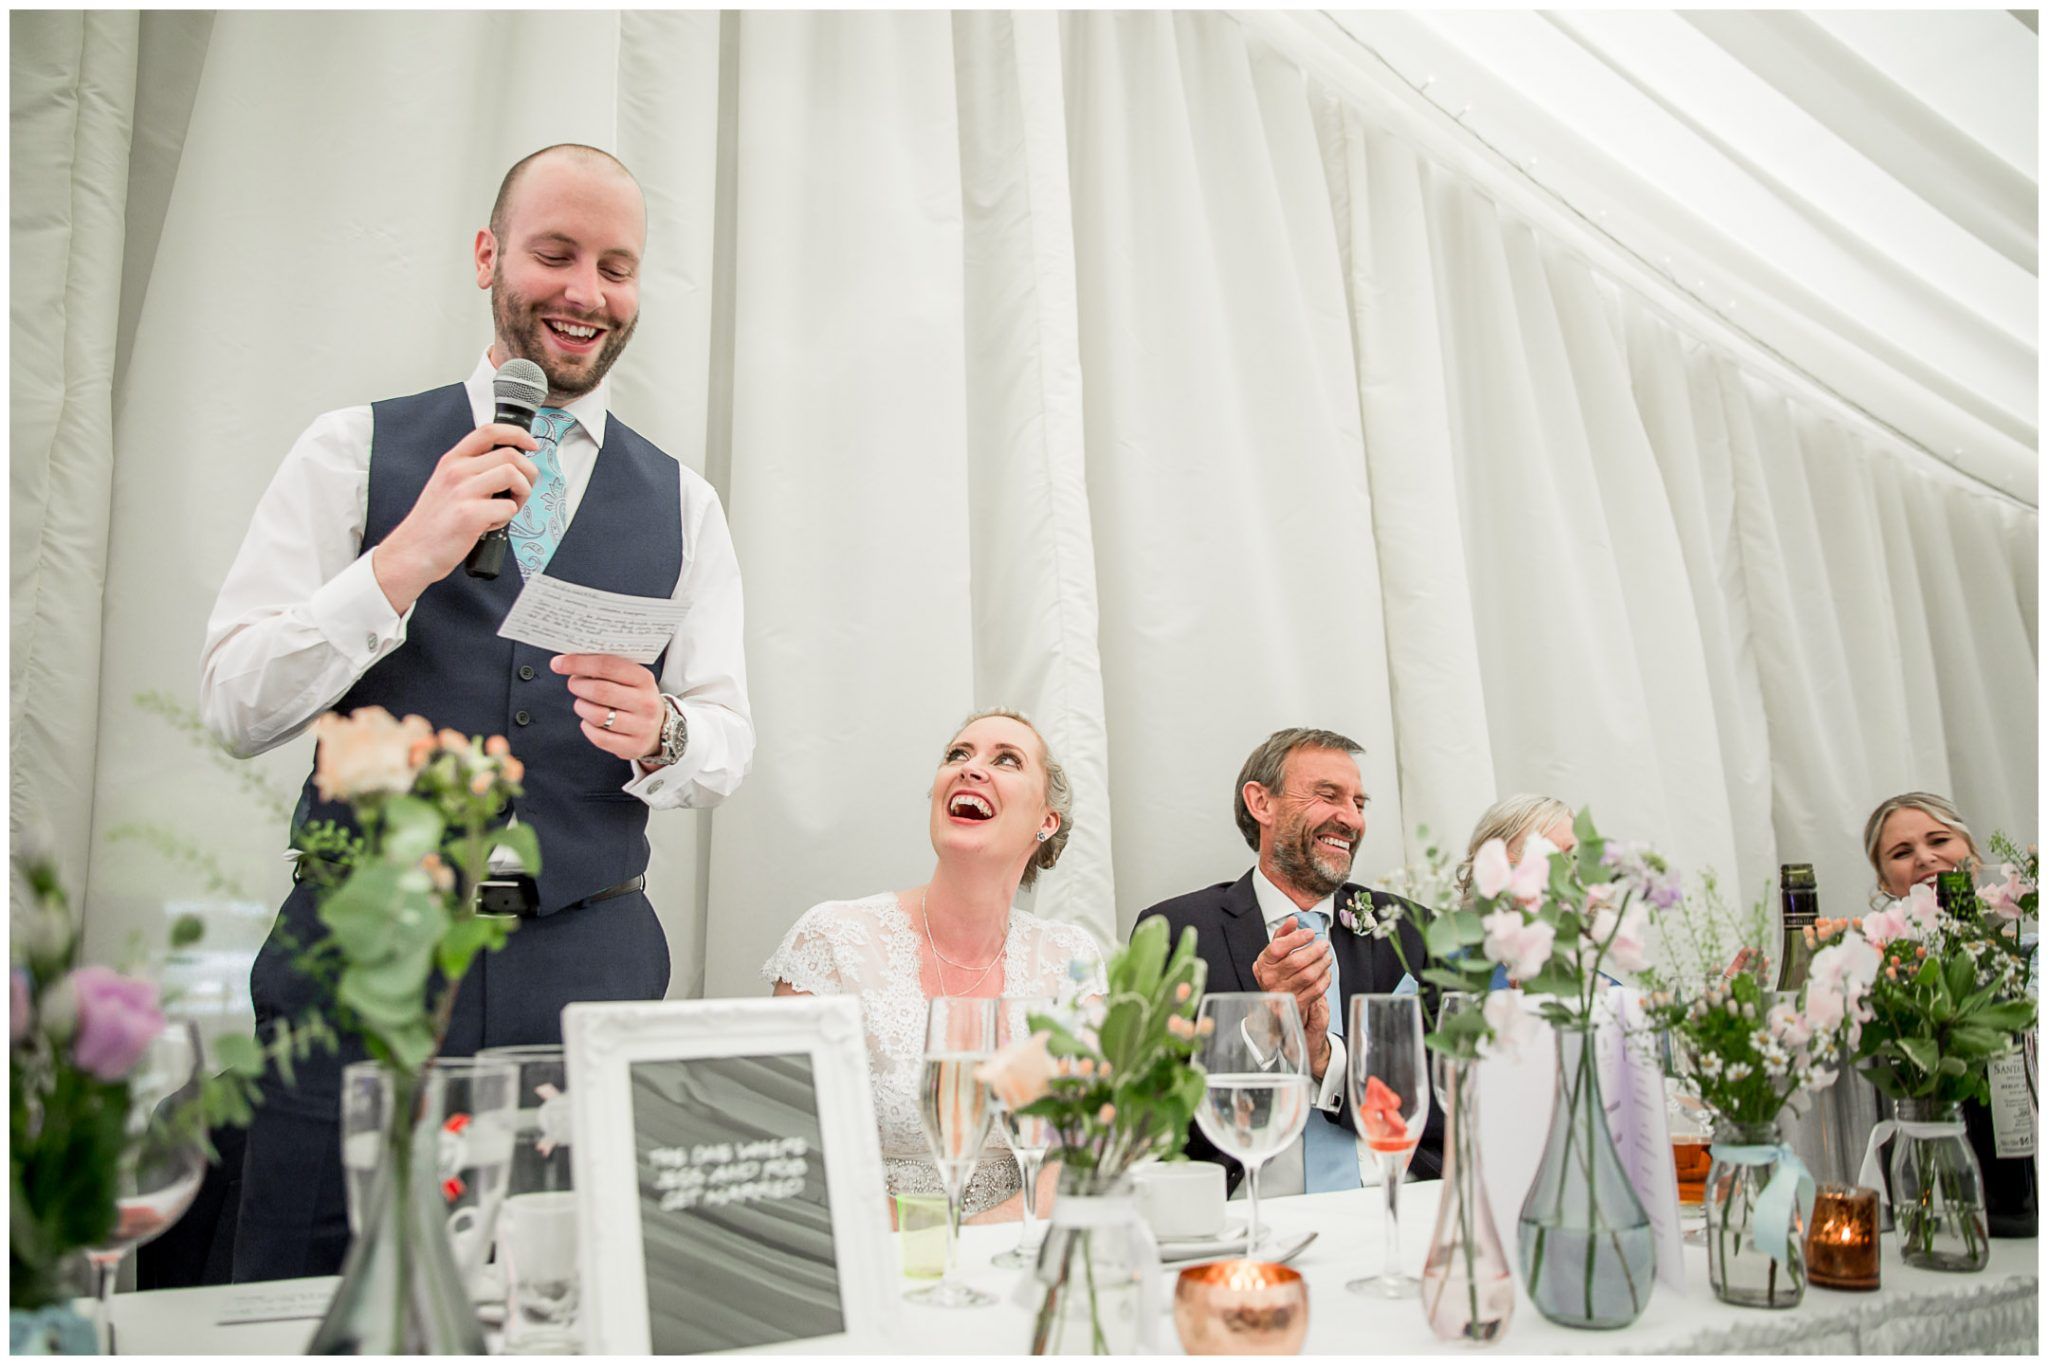 Oakley Hall wedding photography bride reaction to groom's speech